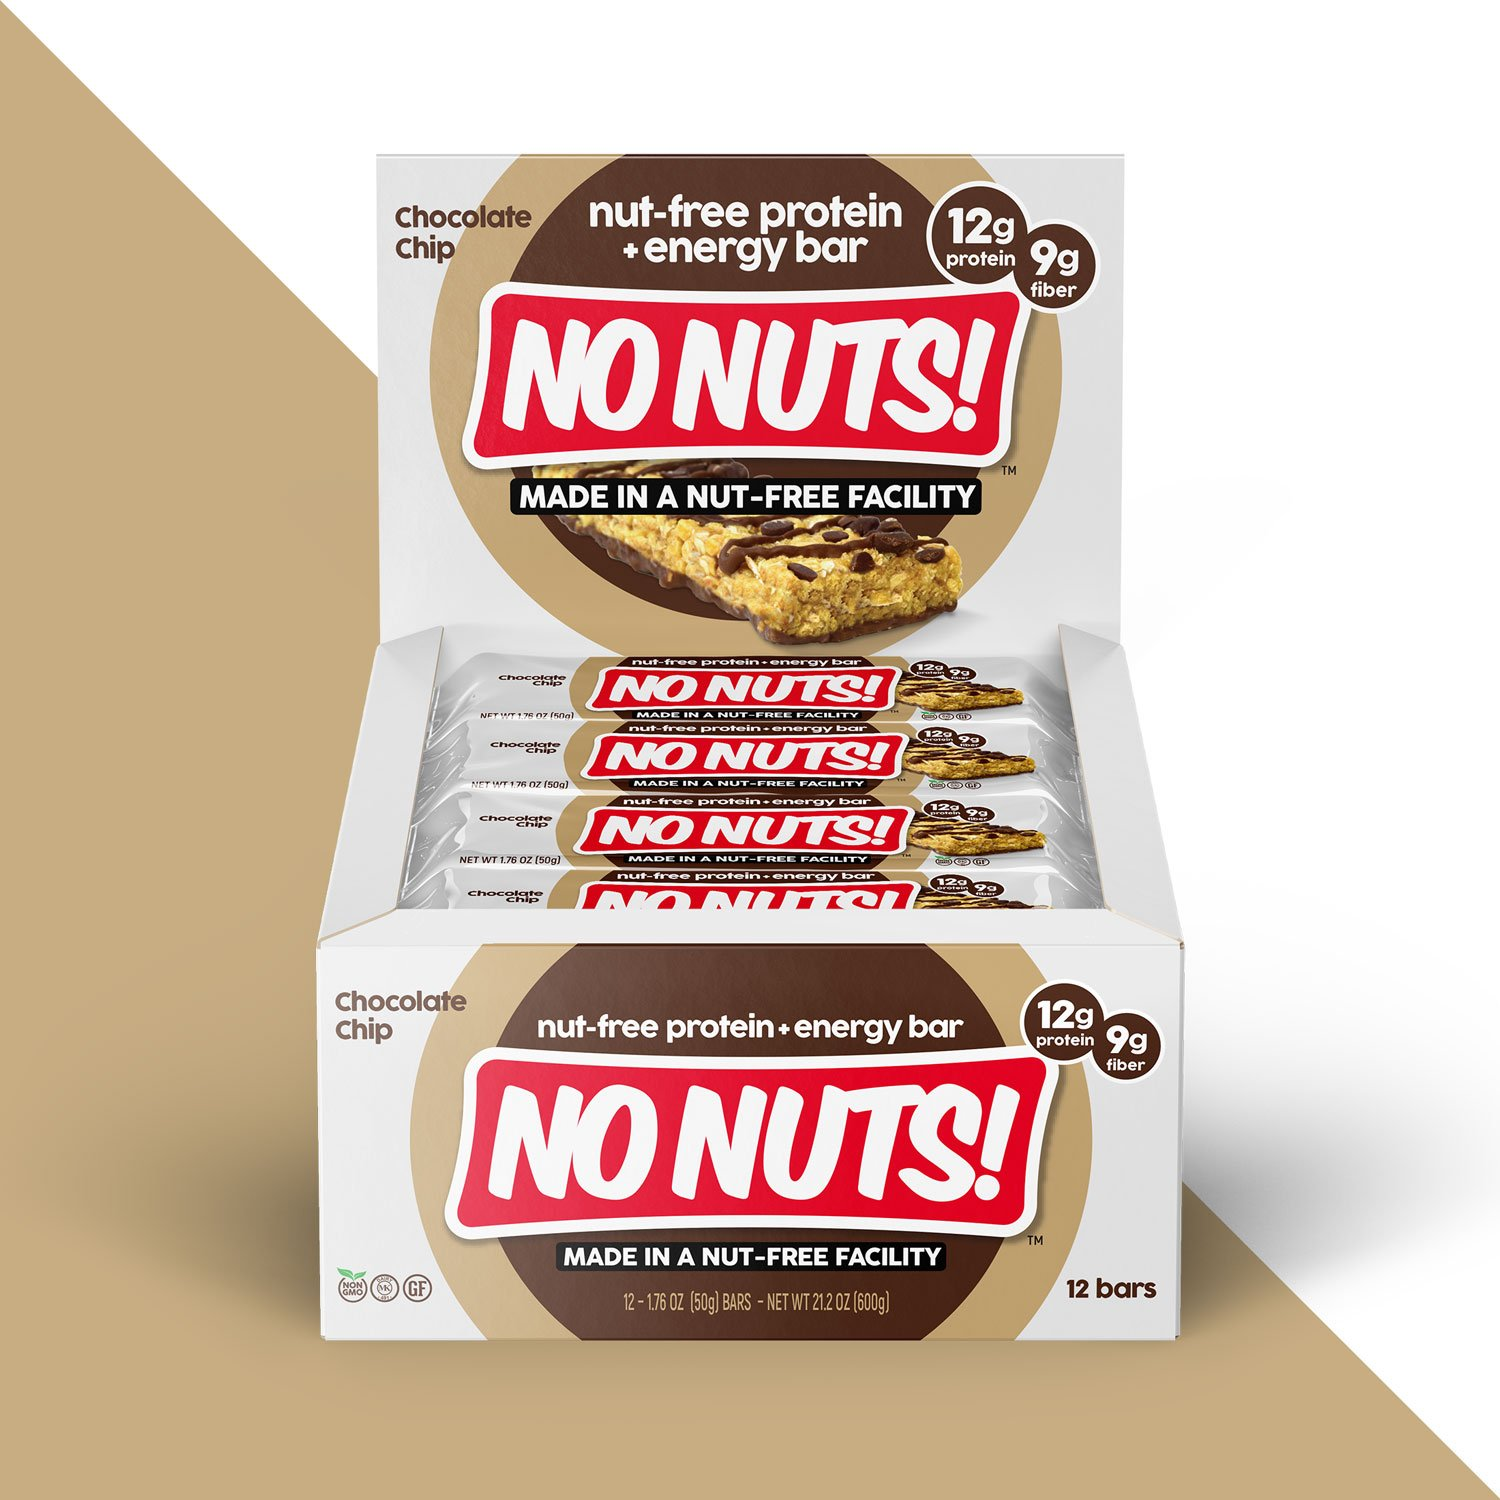 no-nuts-chocolate-bar-packaging-carton_2048x2048